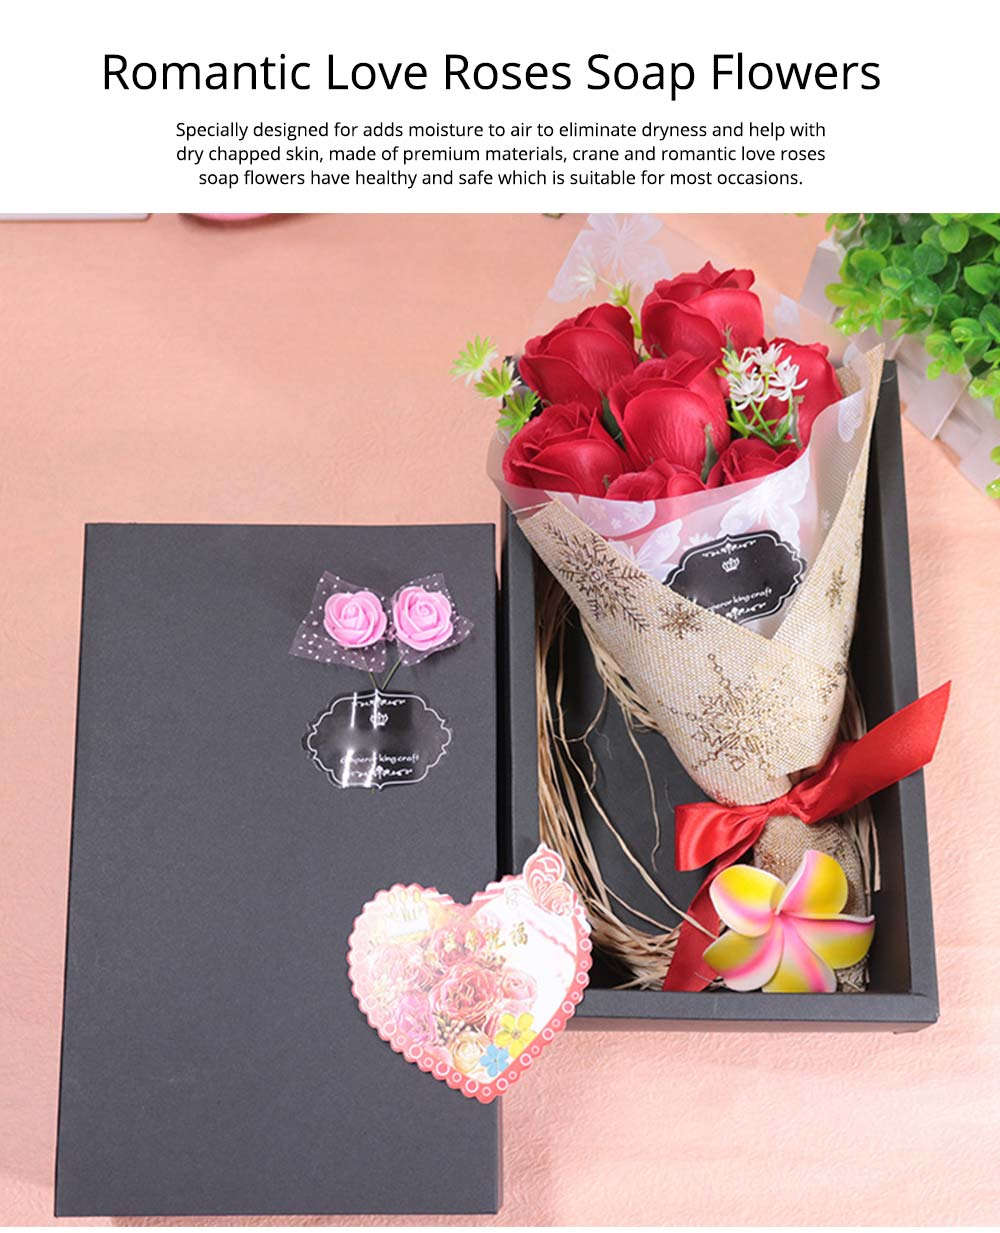 7 Romantic Love Roses Soap Flowers with Black Cardboard Box for Girlfriend Valentine's Day Gift 0